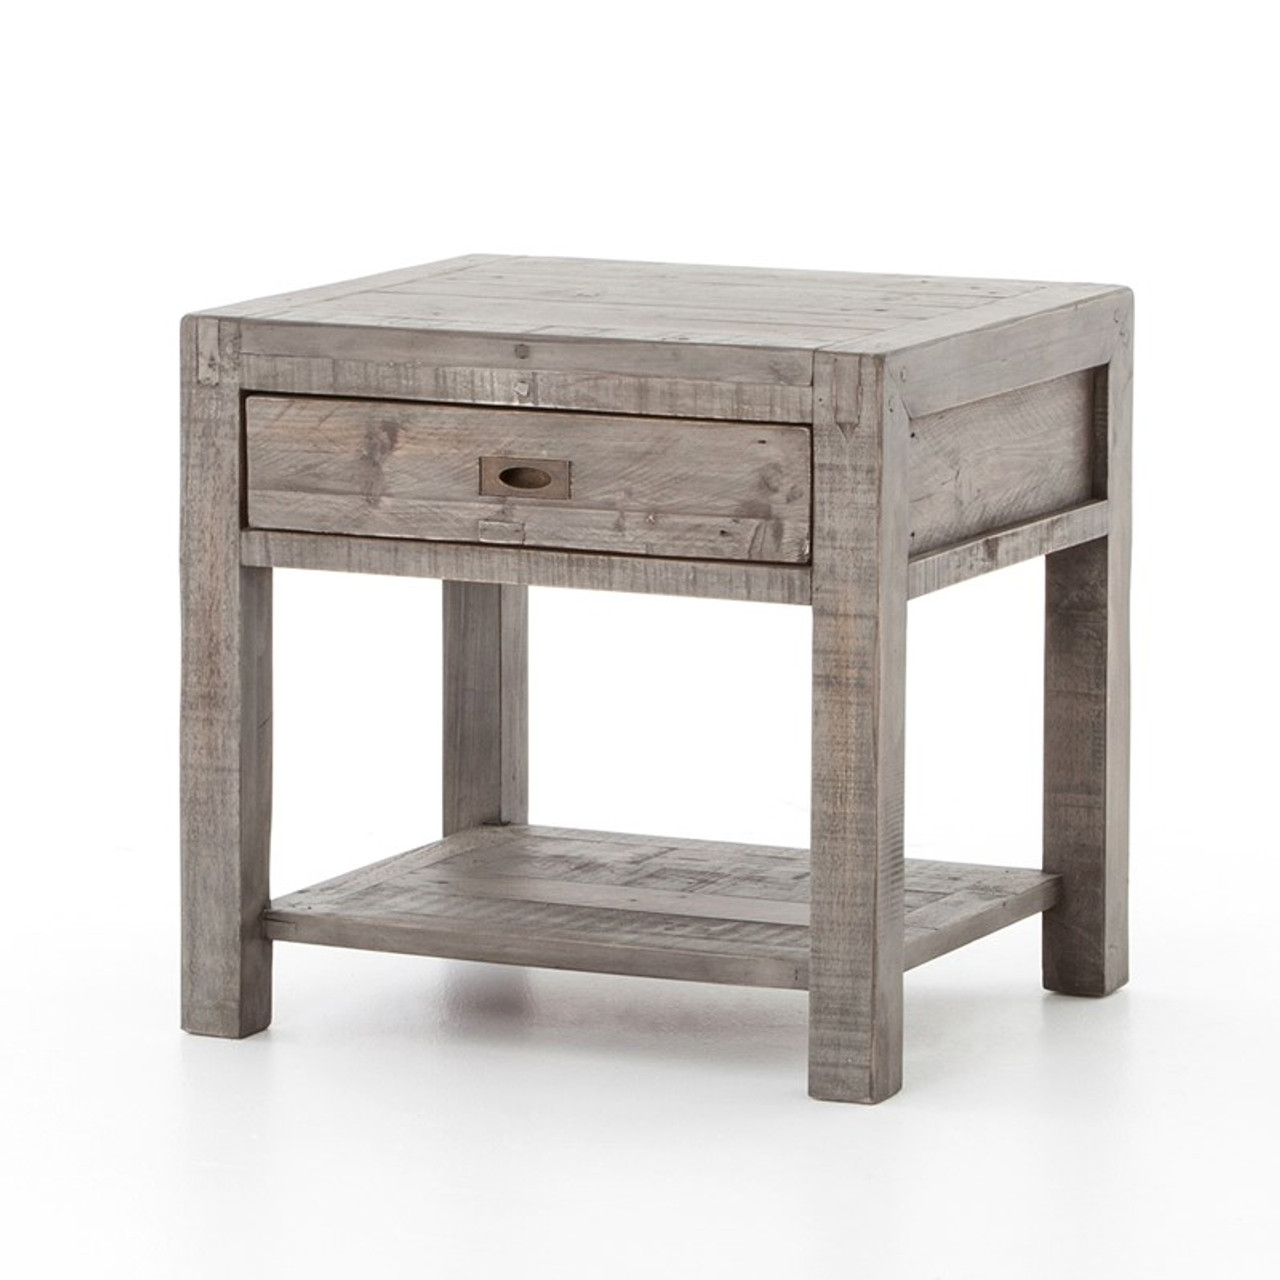 Parsons reclaimed wood drawer end table grey zin home